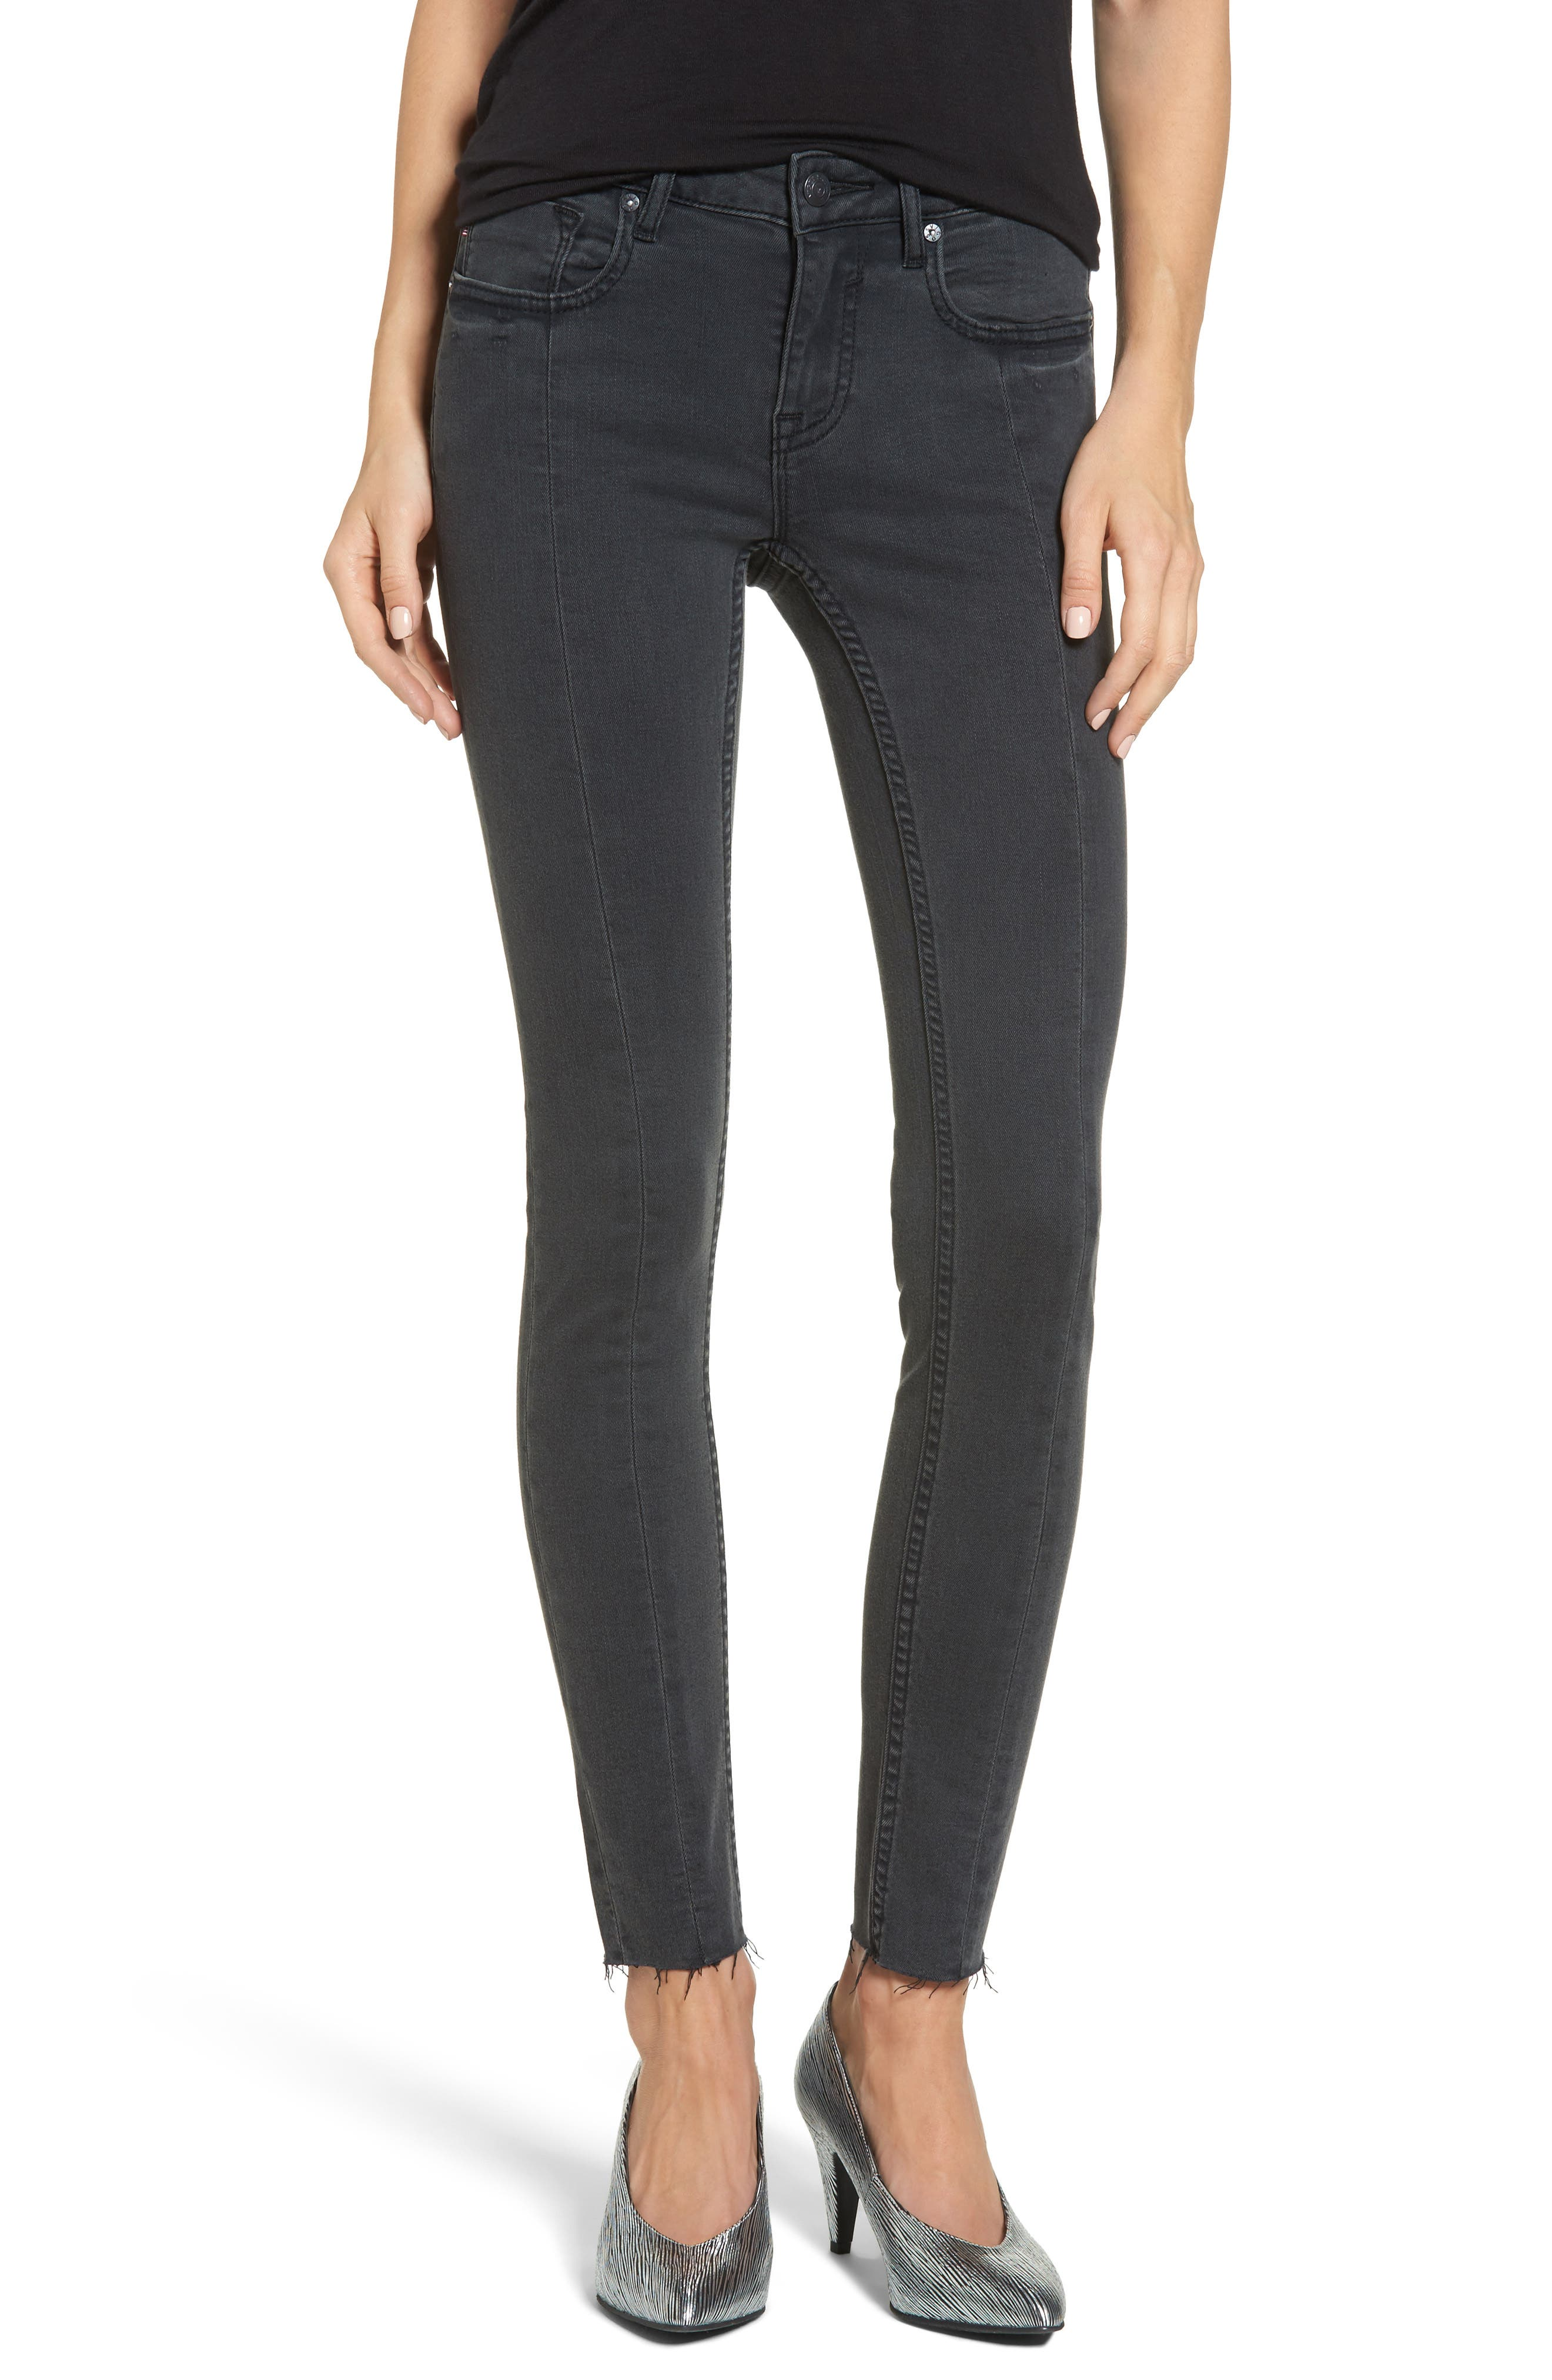 Jagger Front Seam Skinny Jeans,                         Main,                         color, 006